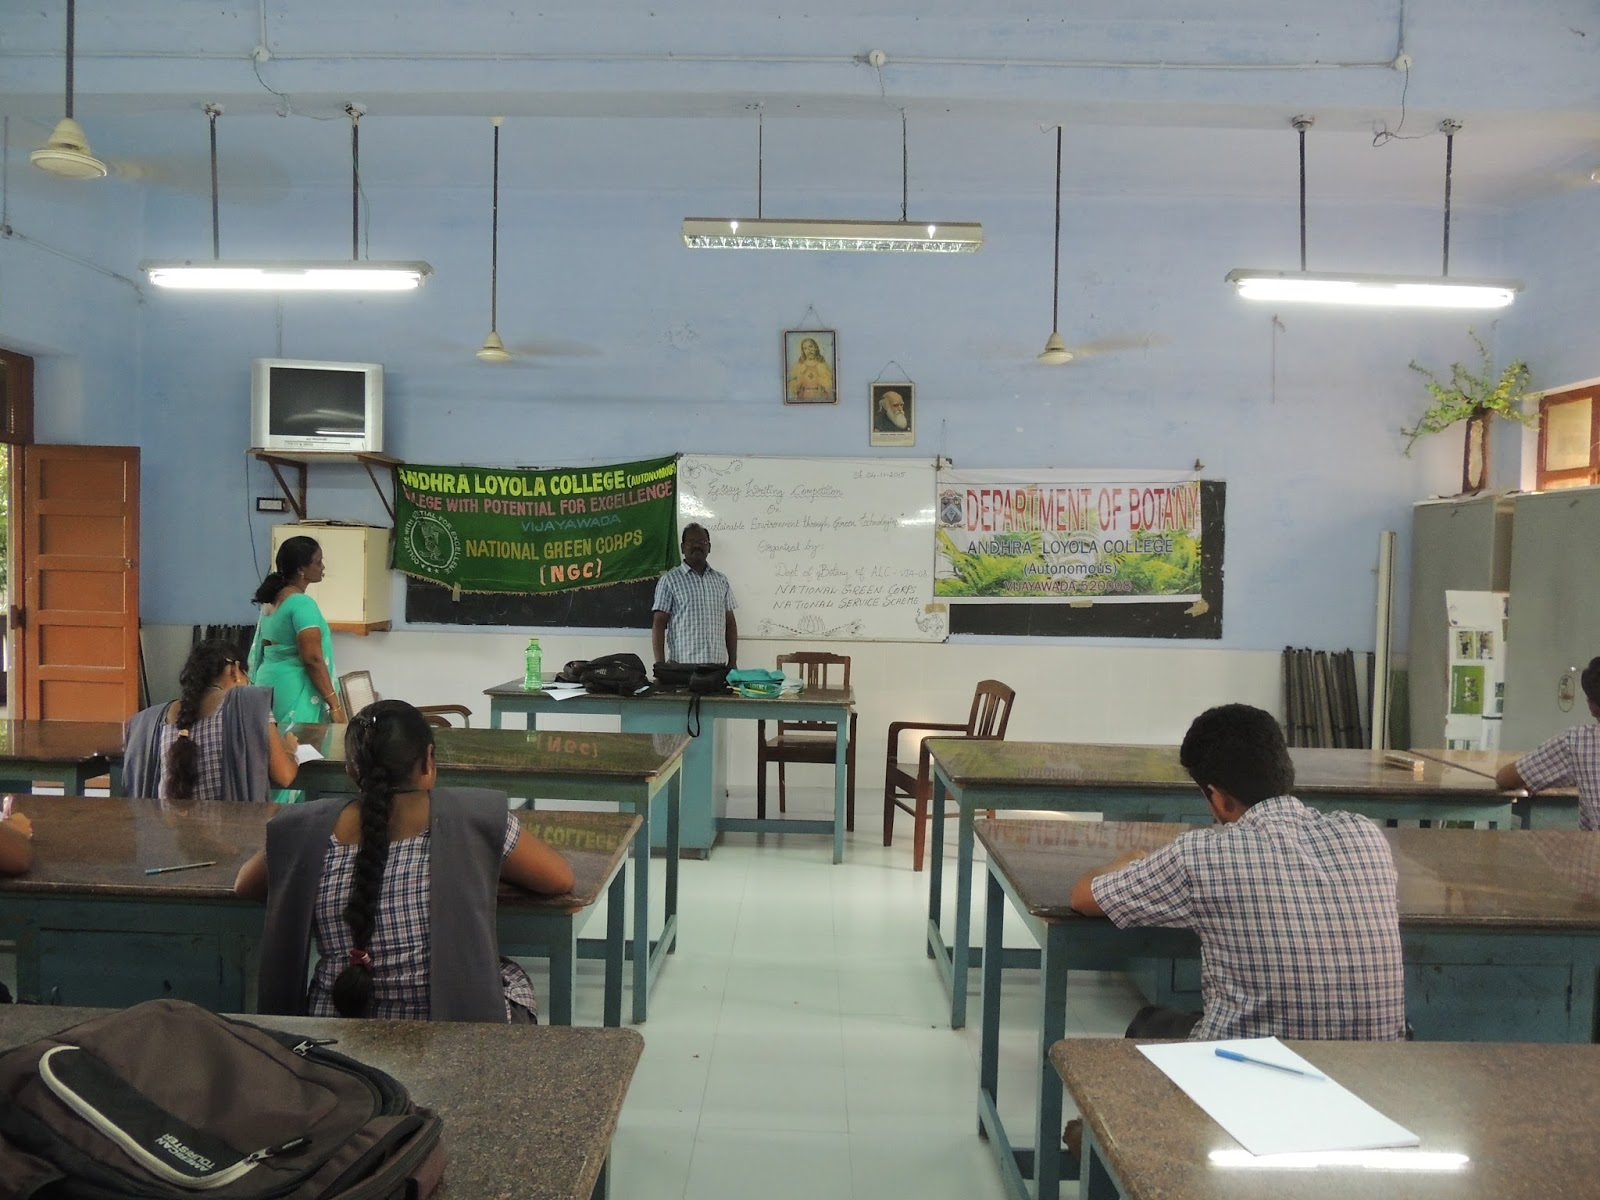 andhra loyola college botany association alba essay writing dept of botany organized an essay writing competition on sustainable environment through green technologies on 4 th 2015 in the botany lab